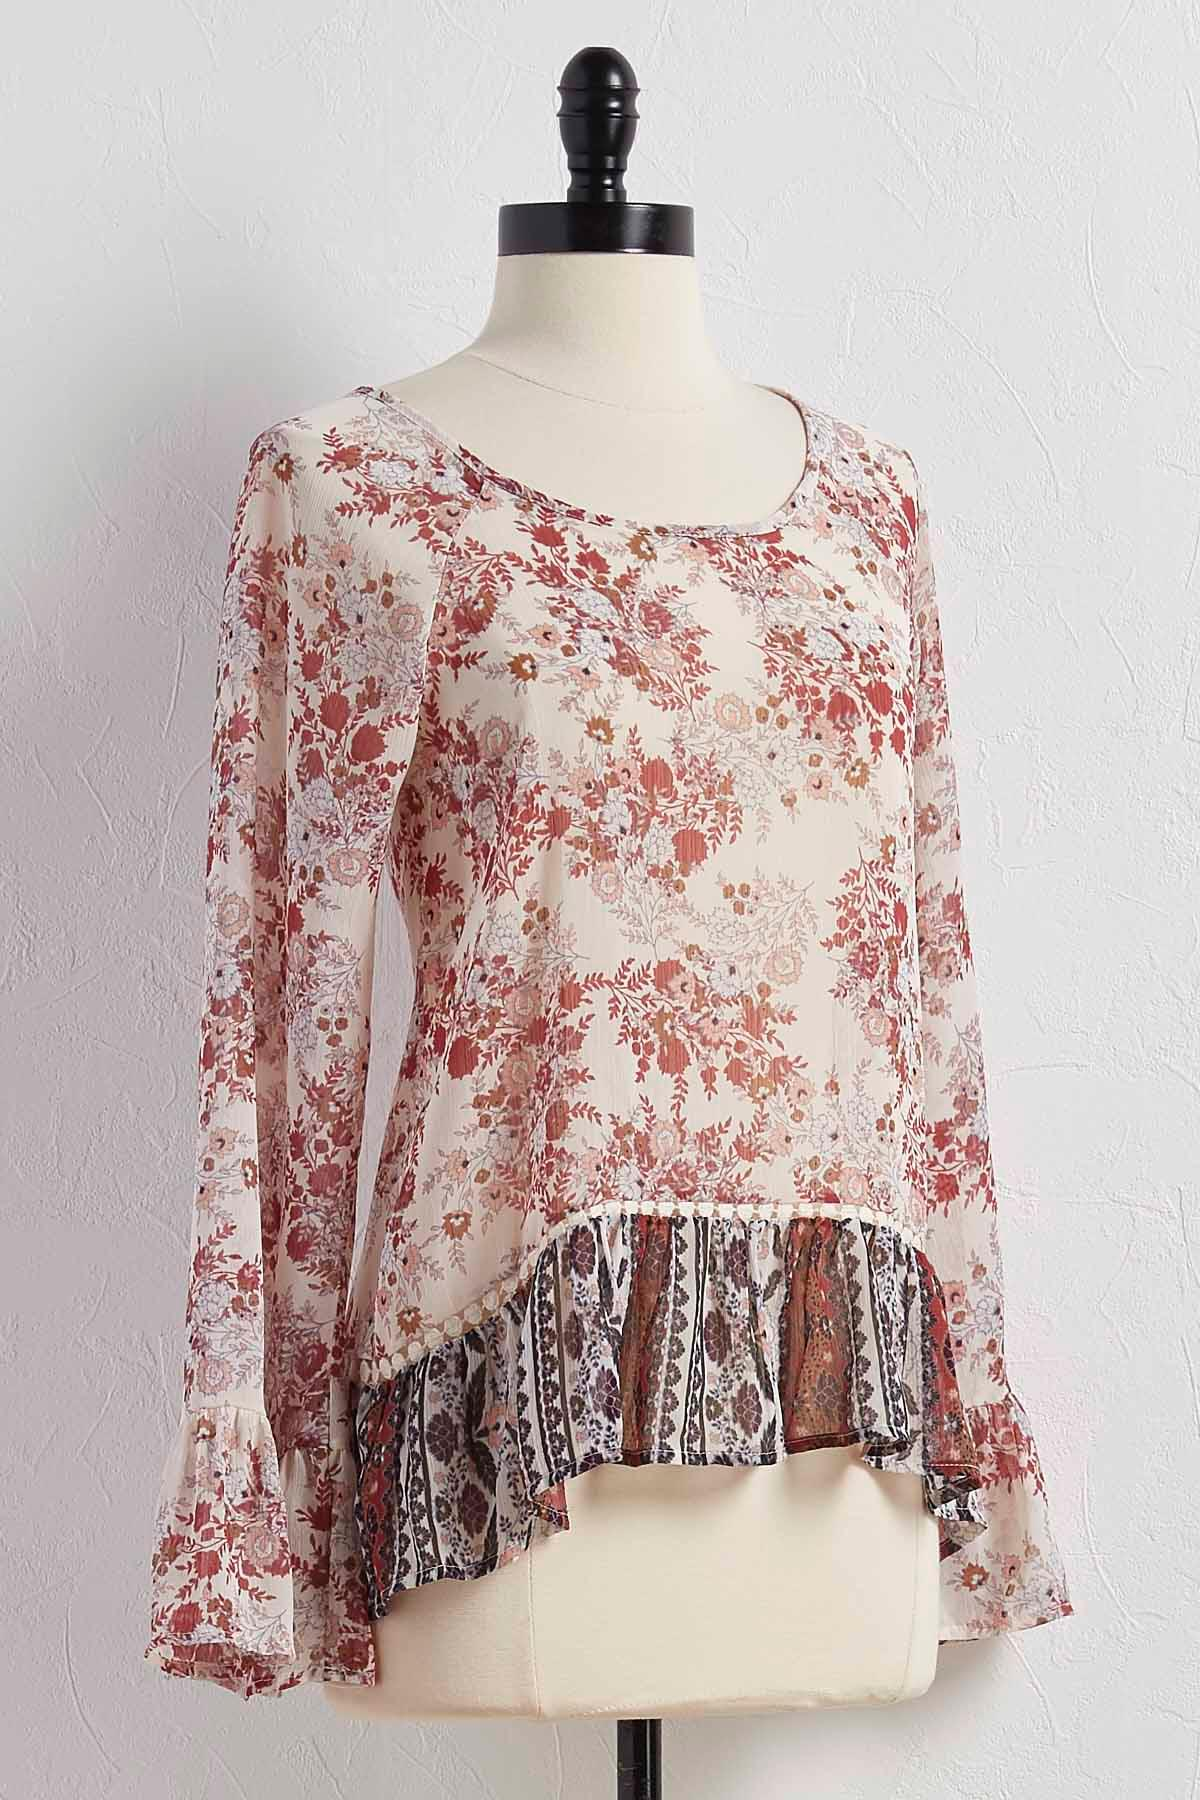 Ruffled Mixed Print Poet Top